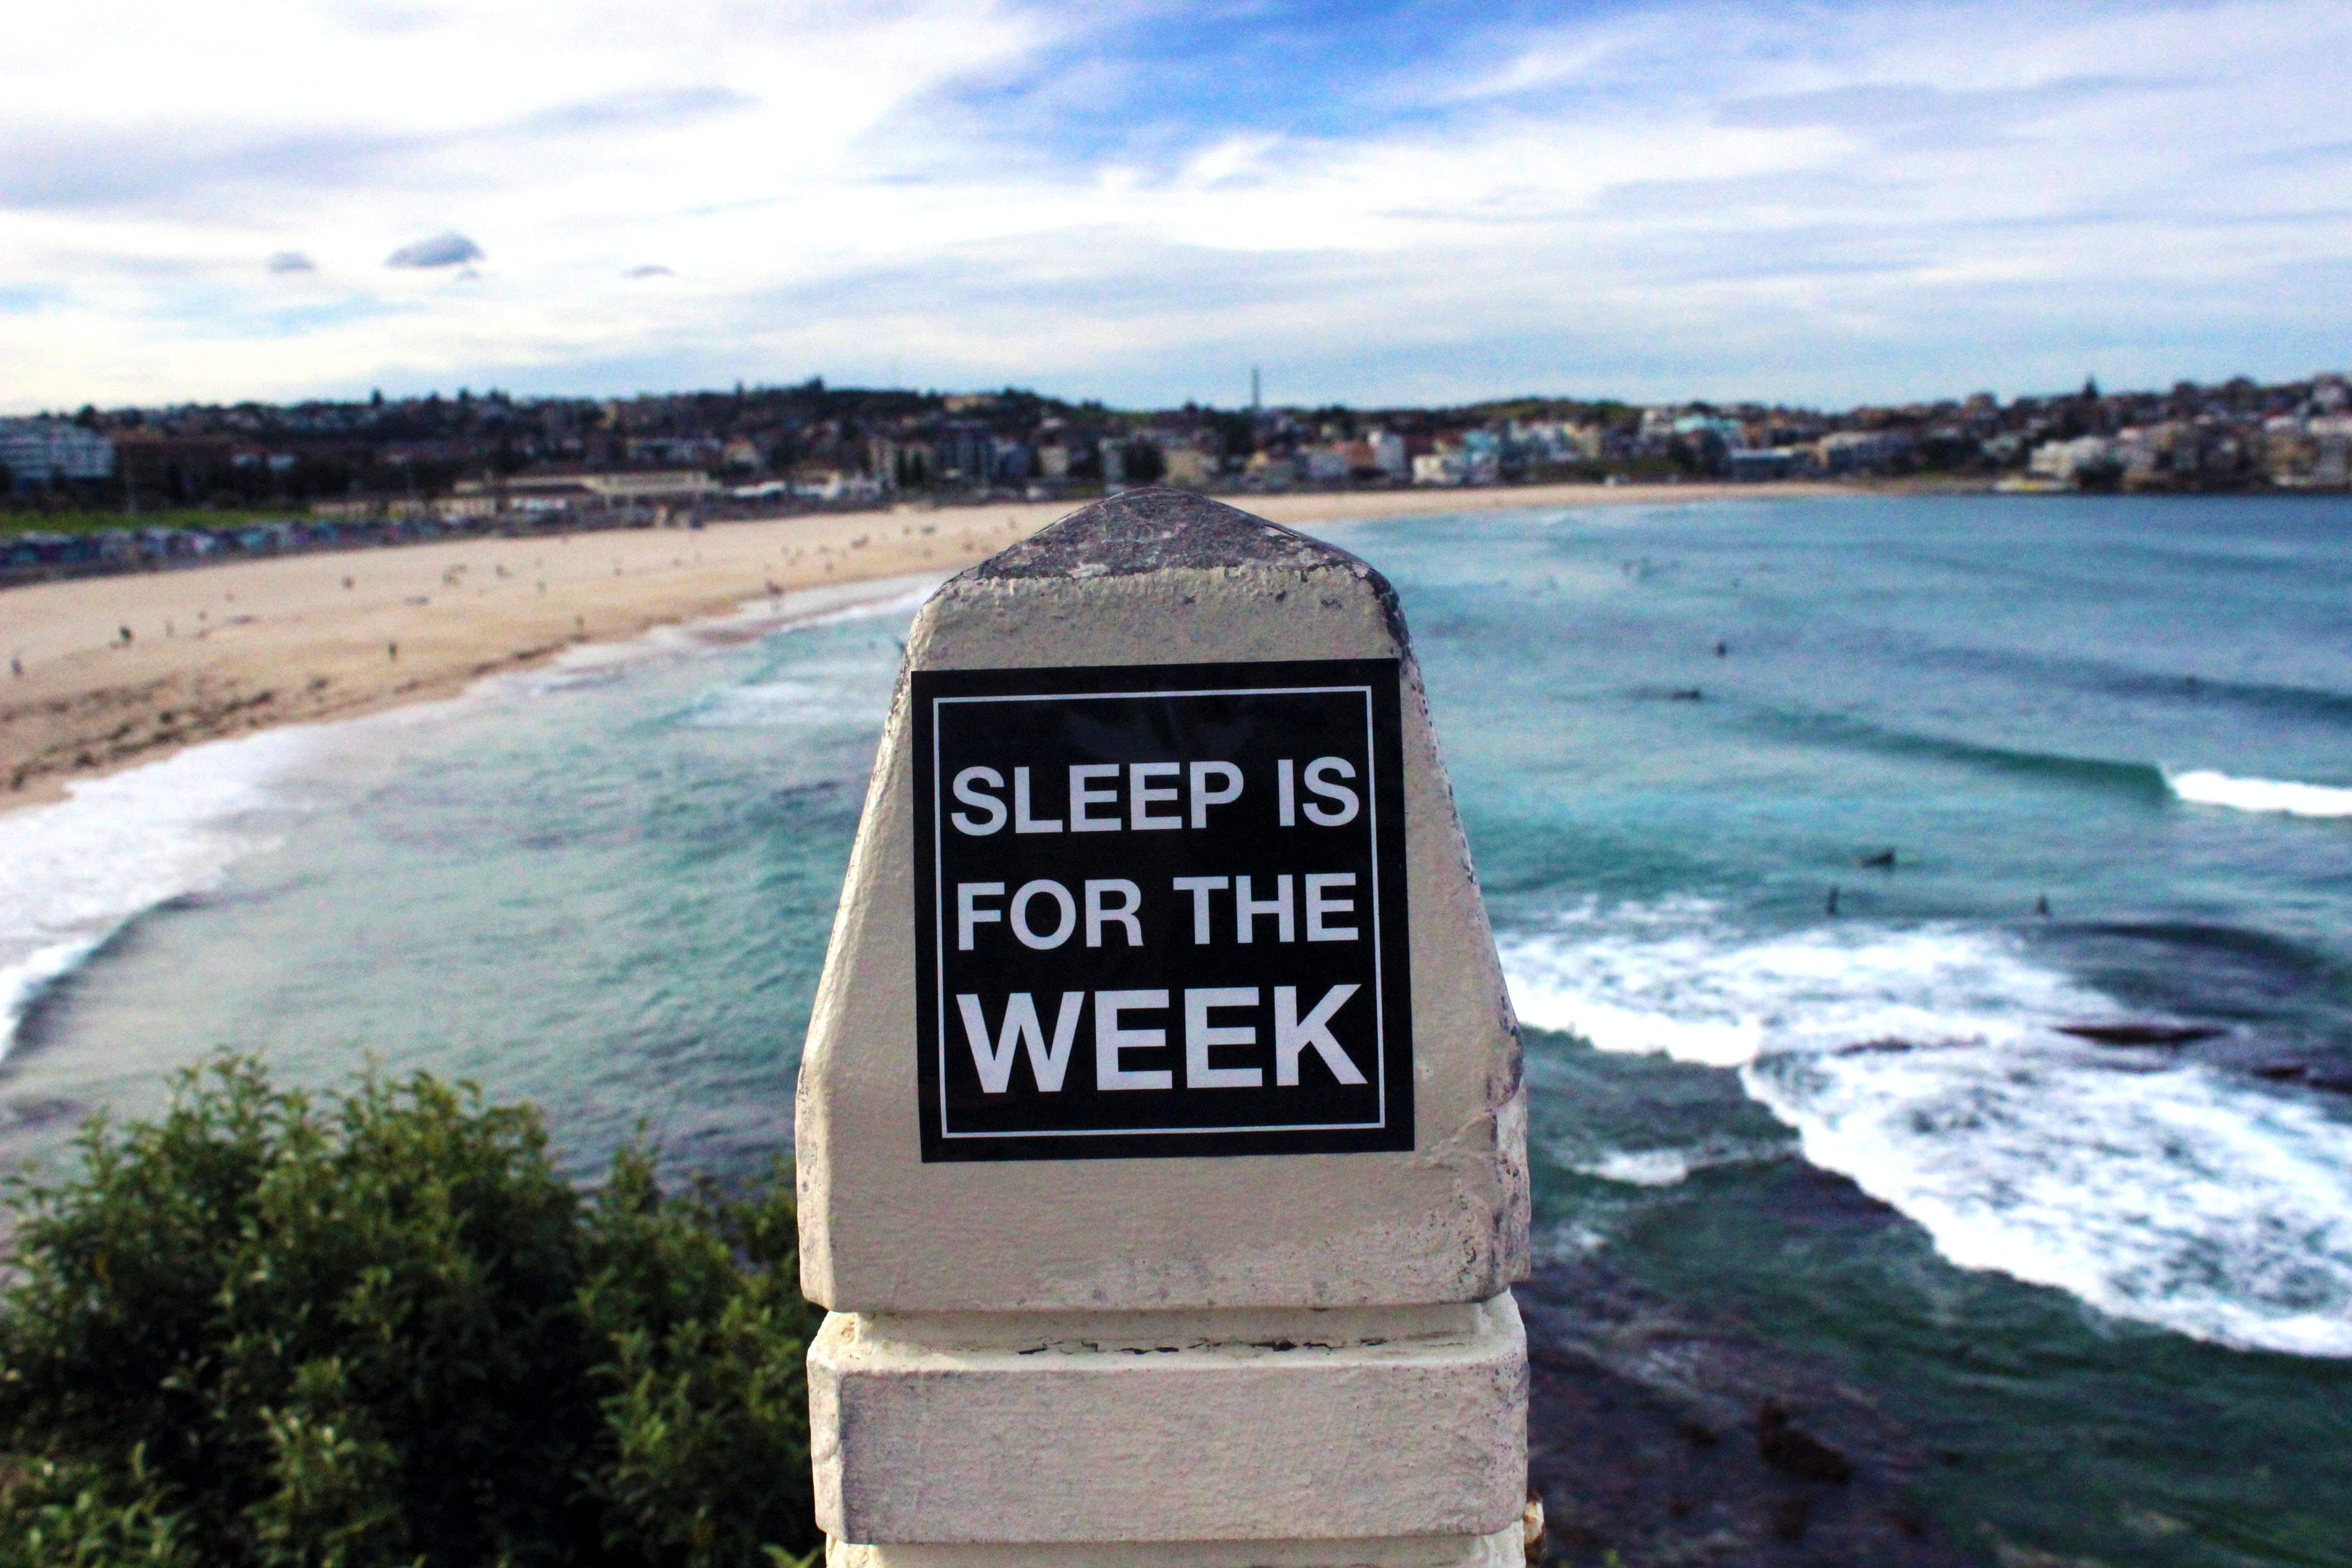 sleep is for the week signage